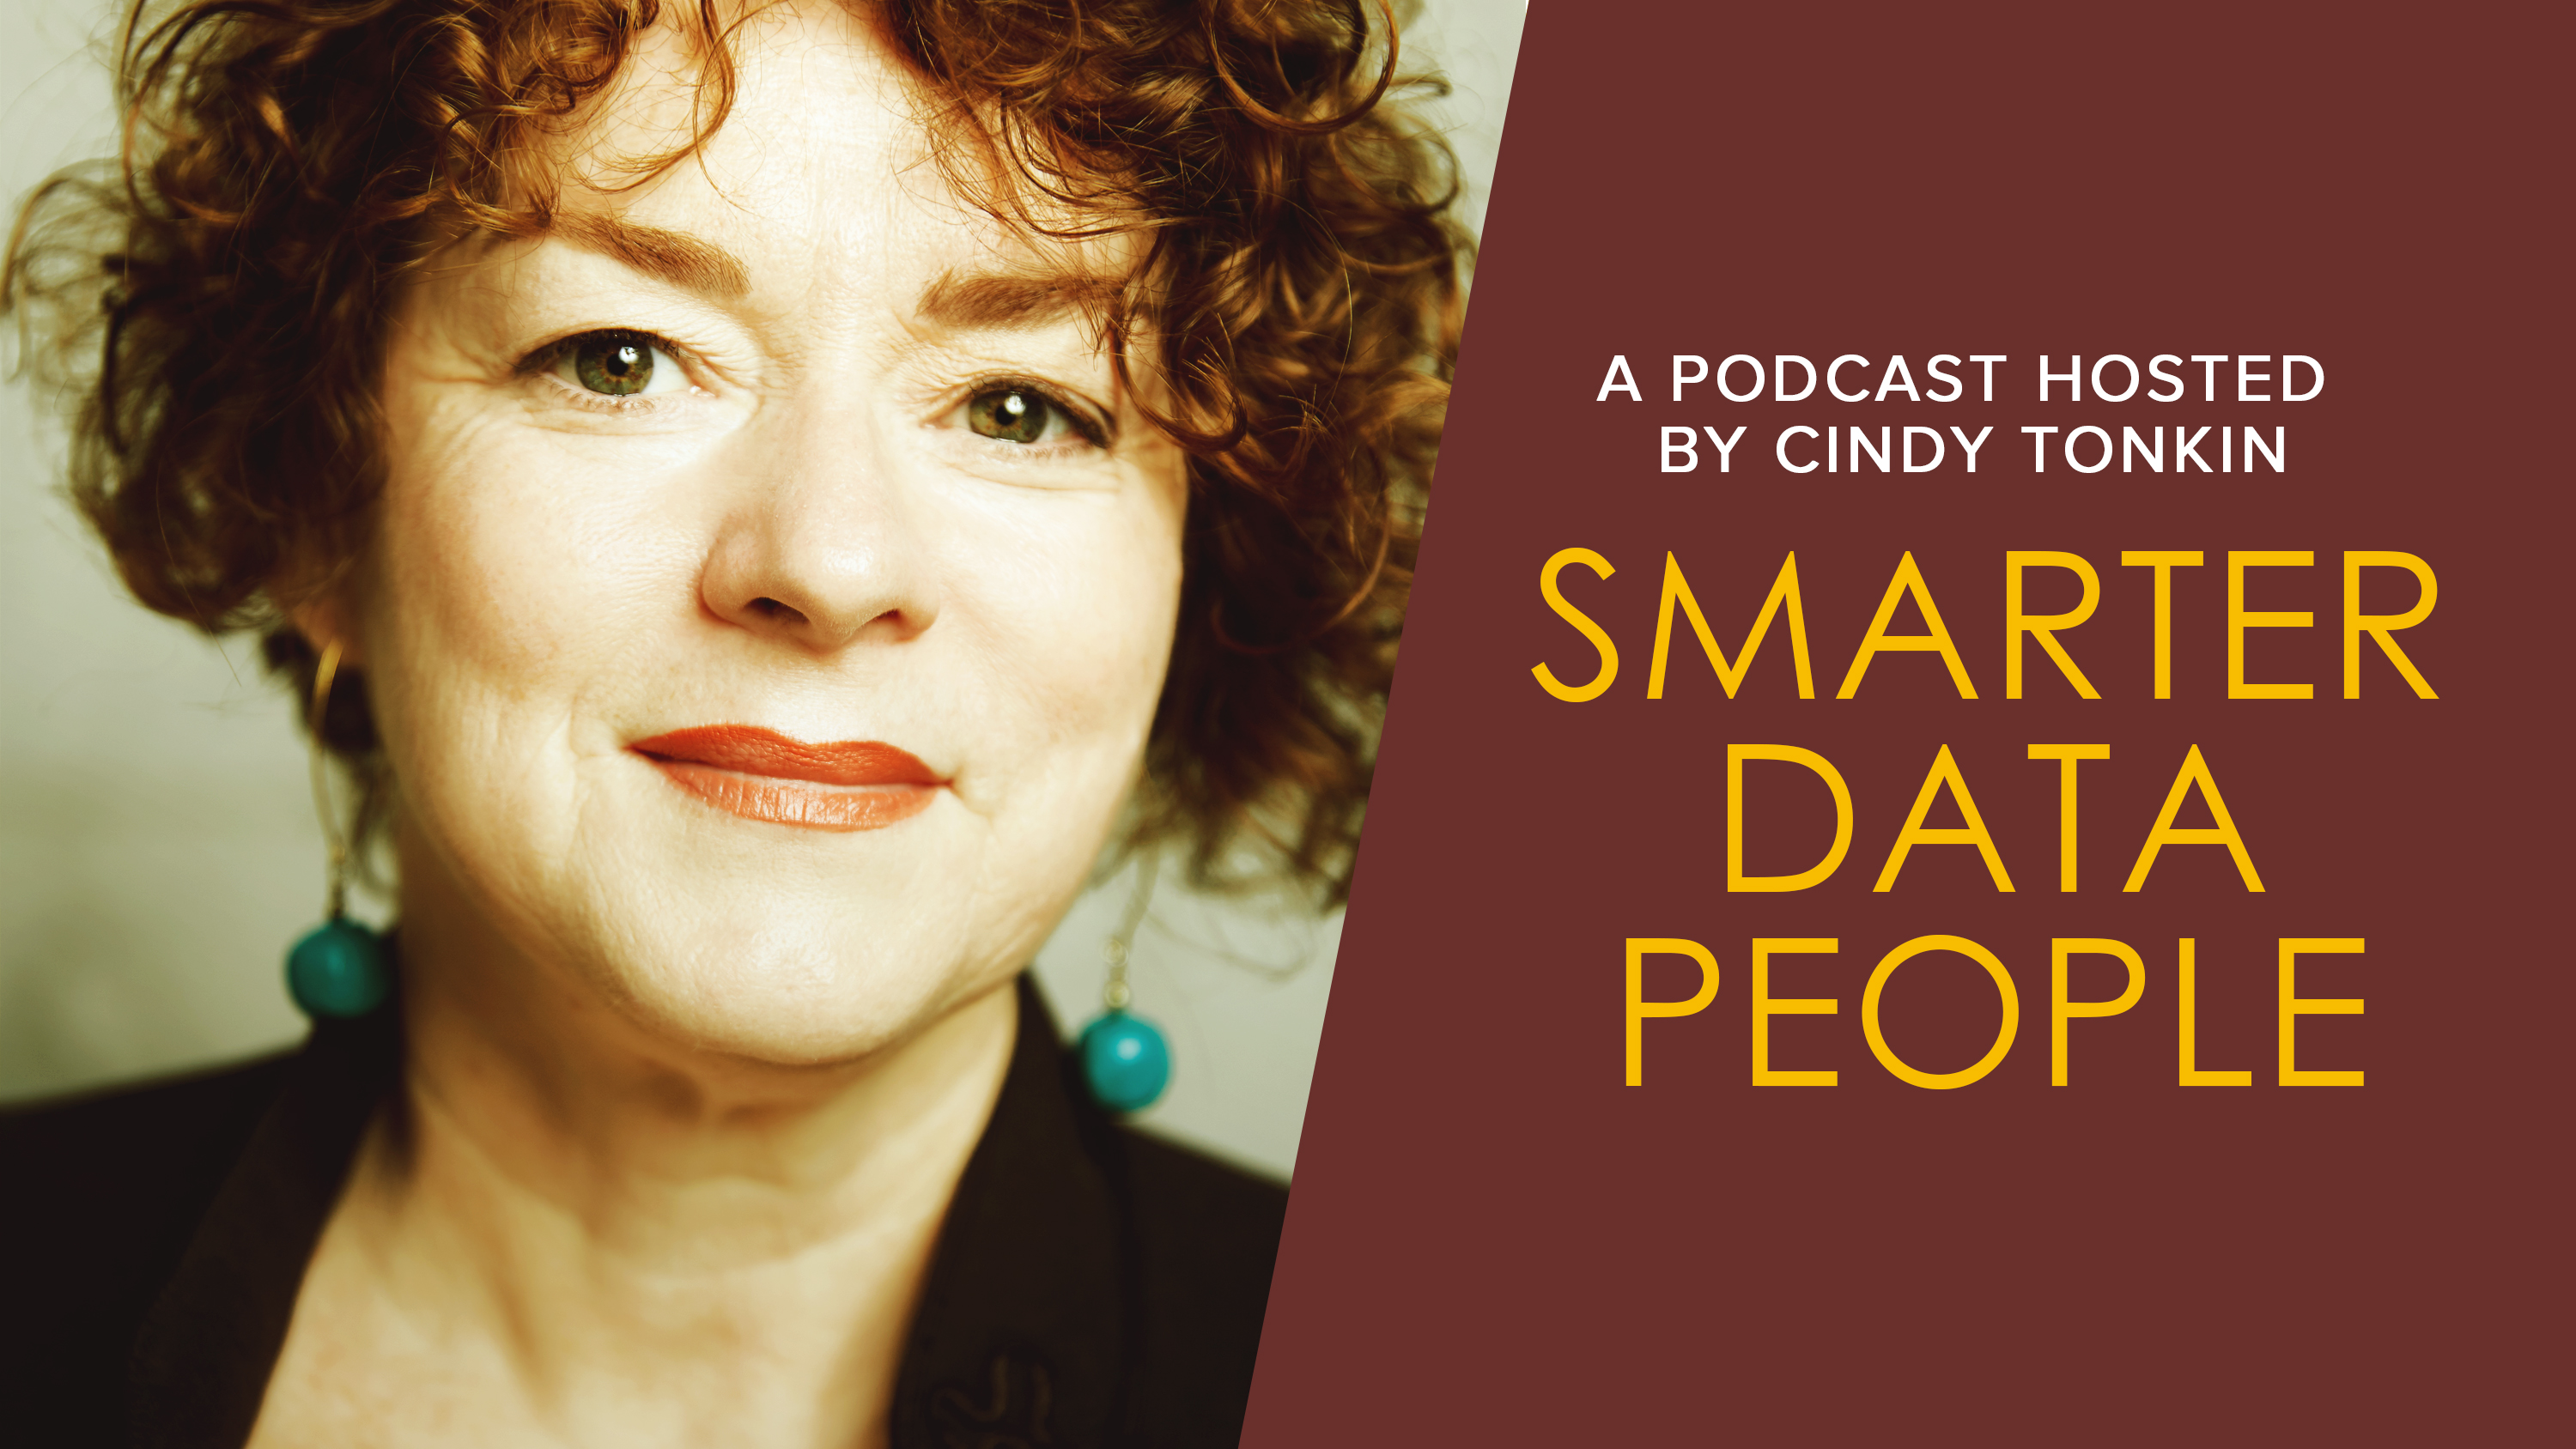 Aaron Artery on Smarter Data People Podcast